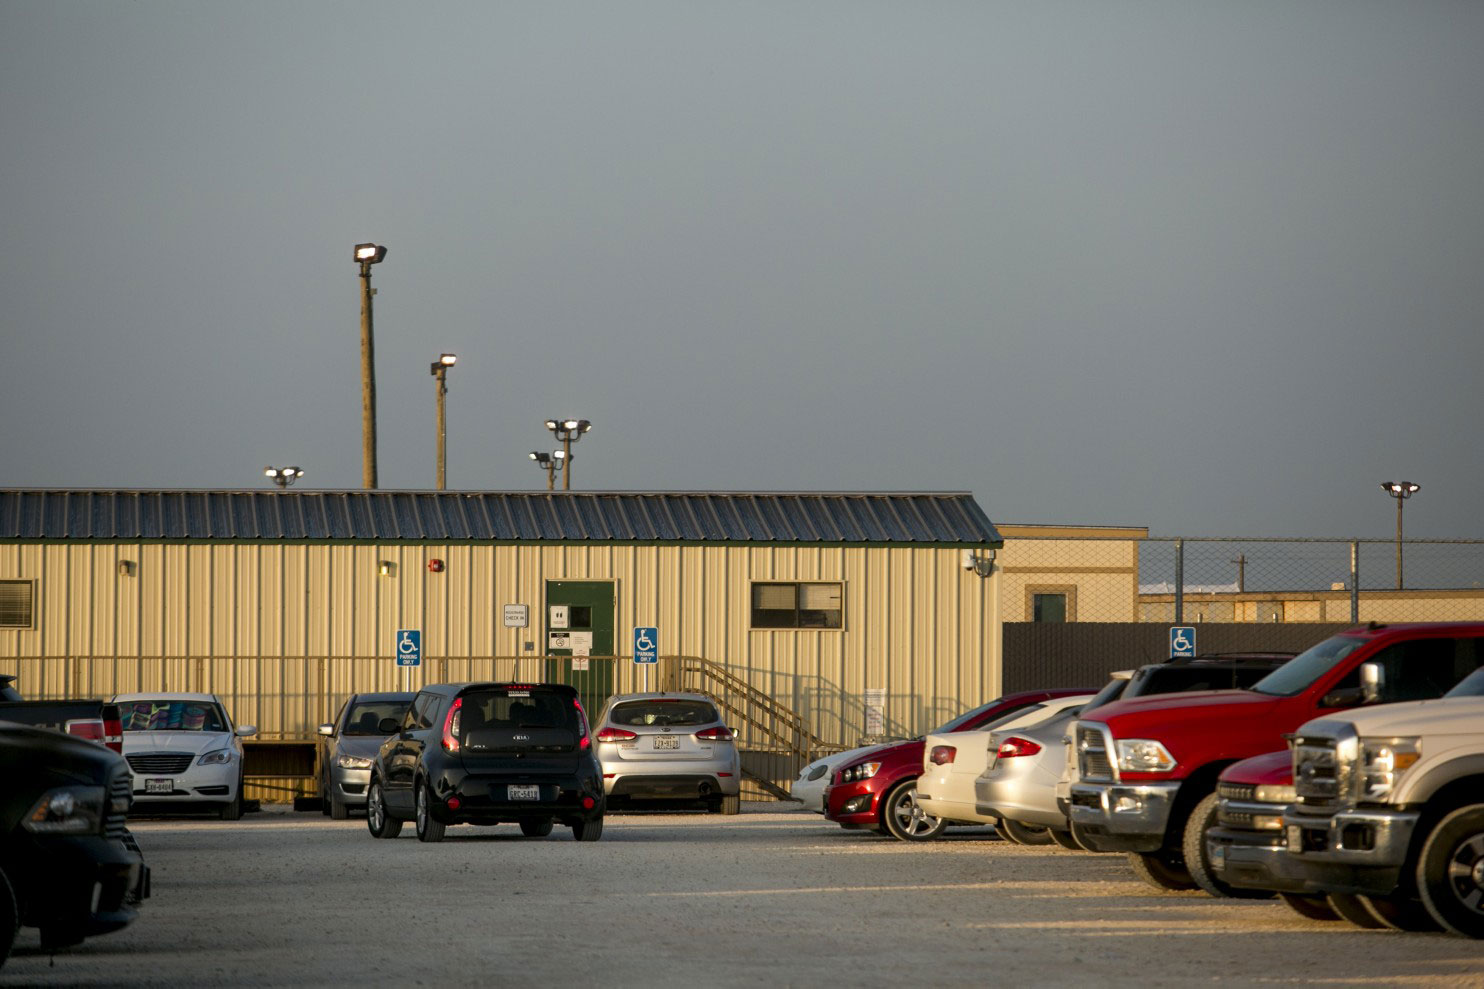 News: Questionable efficacy of detention program for asylum seekers